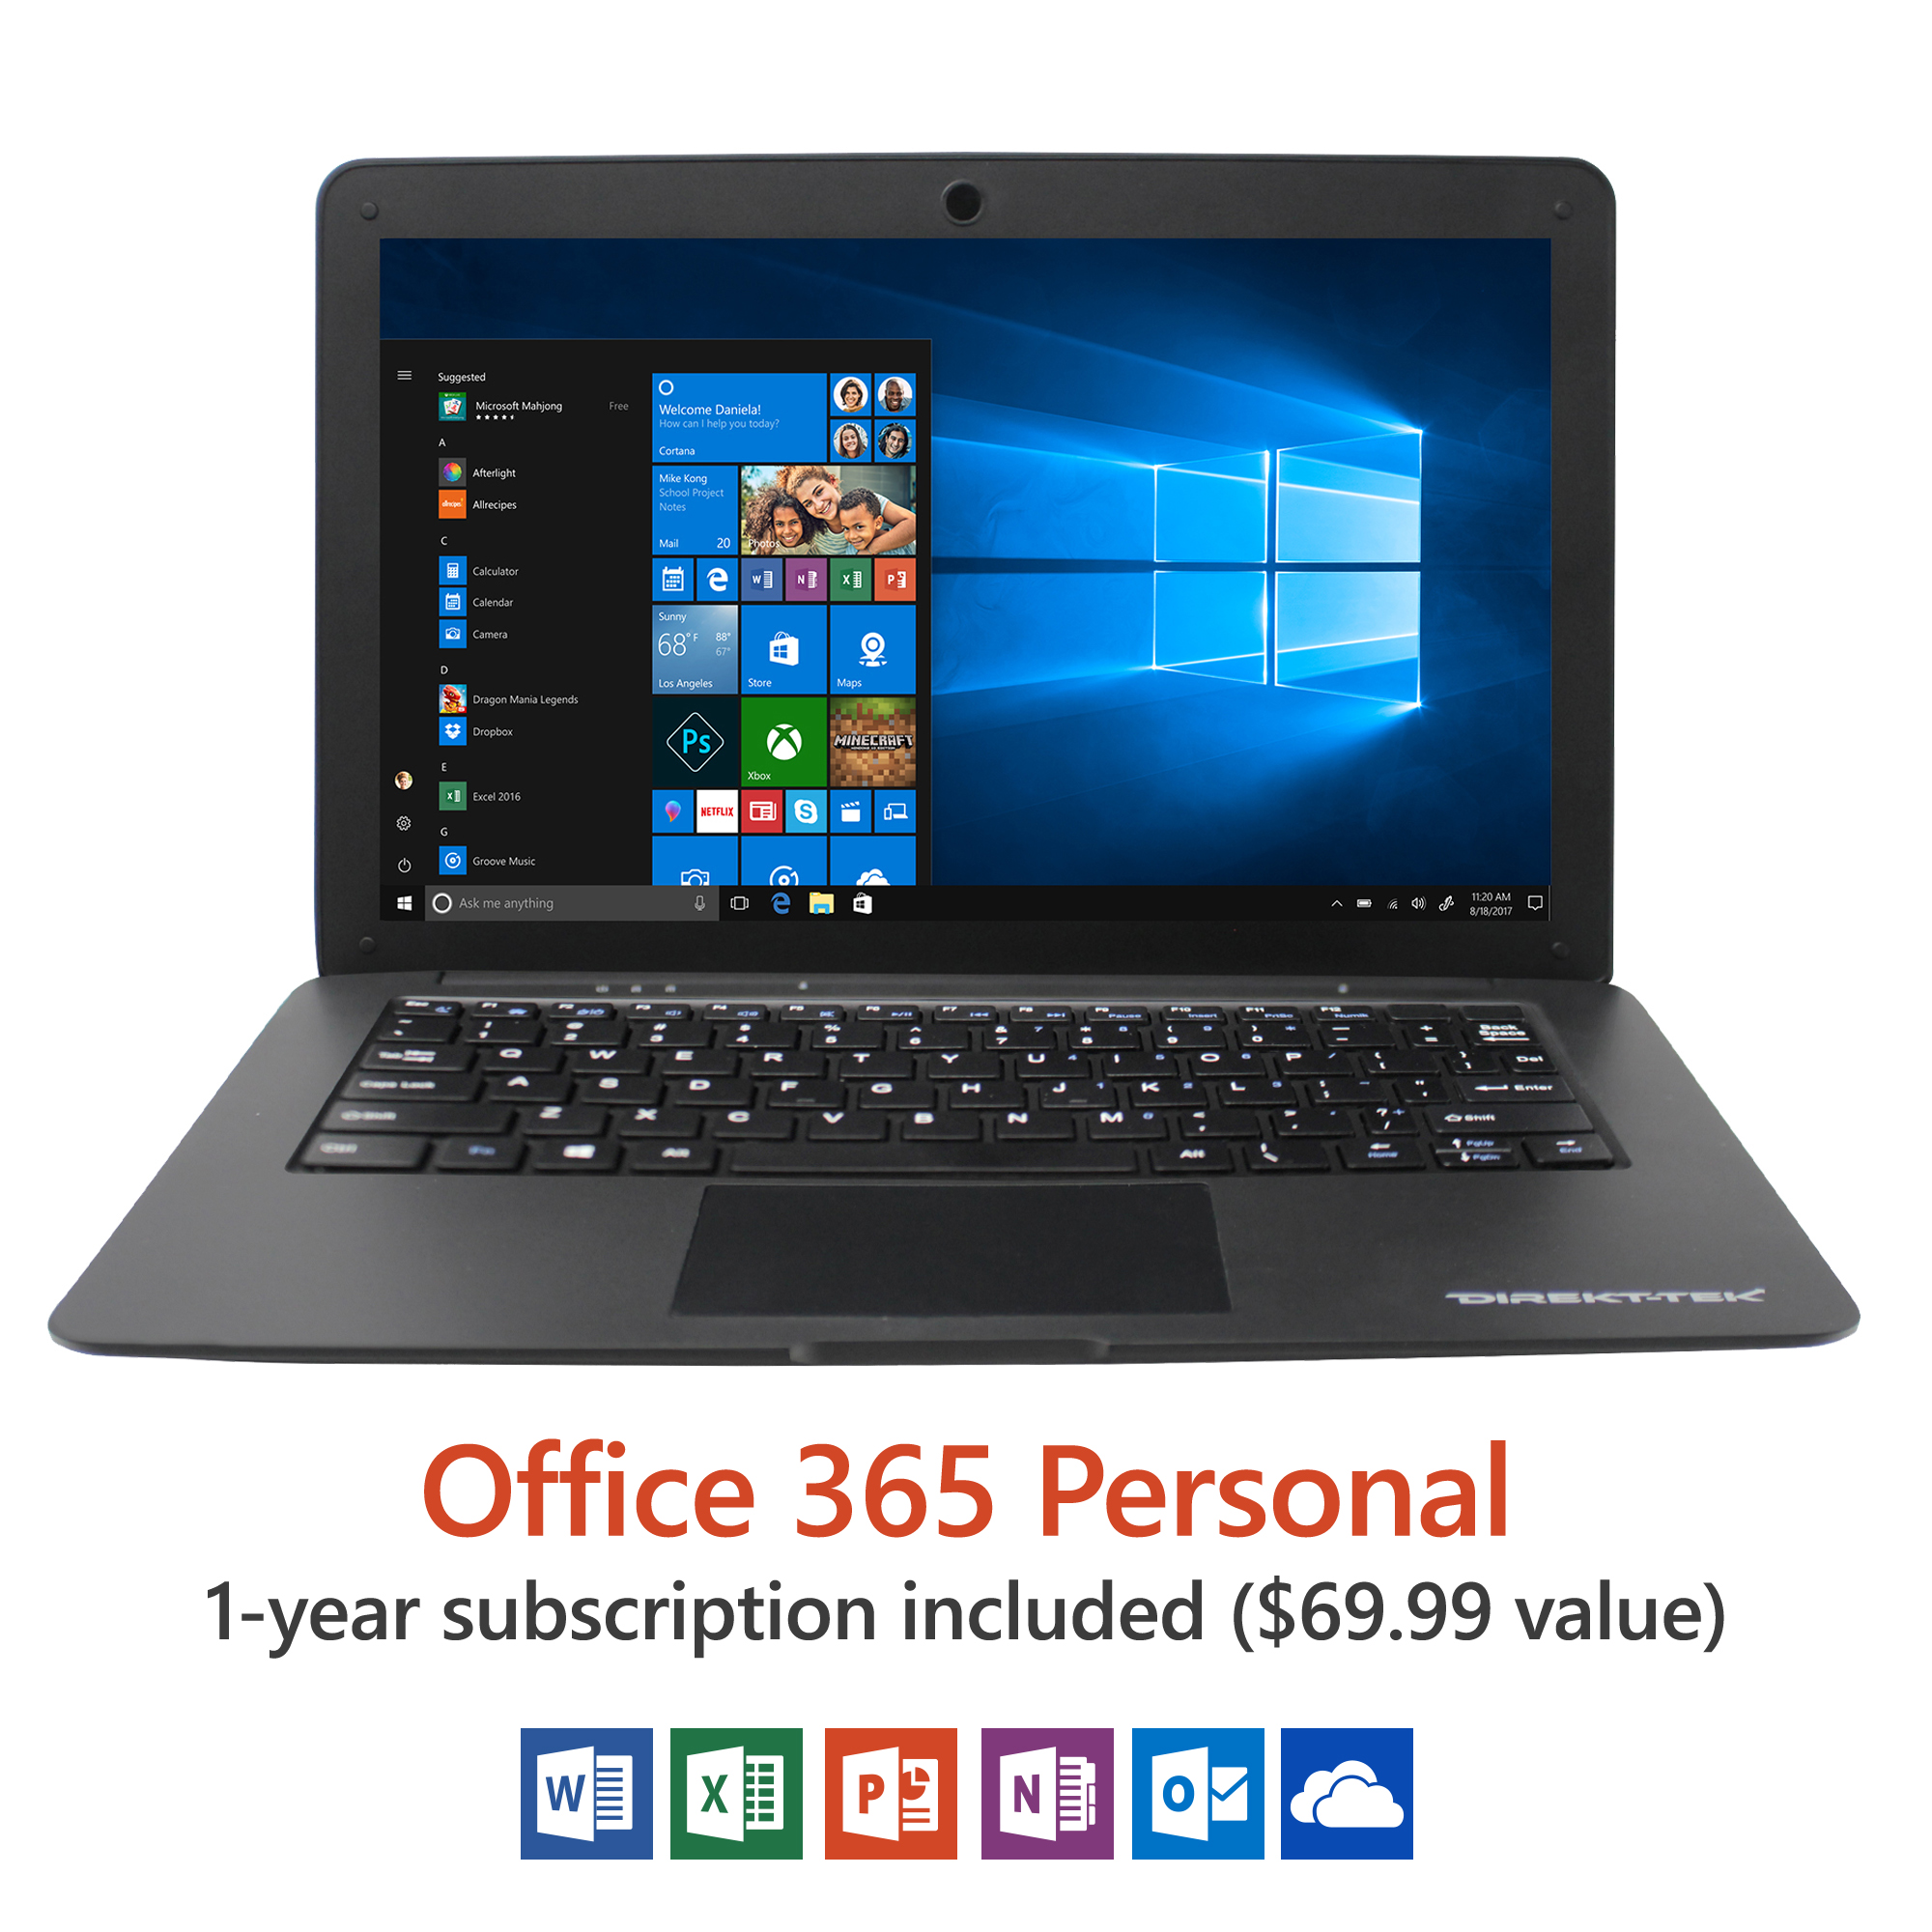 "Direkt-Tek 12.5"" Ultra Slim Laptop, Windows 10 Home, Office 365 Personal 1-Year Subscription Included ($69.99 Value), Intel Processor, 32GB storage, Front camera with 10 hour battery"